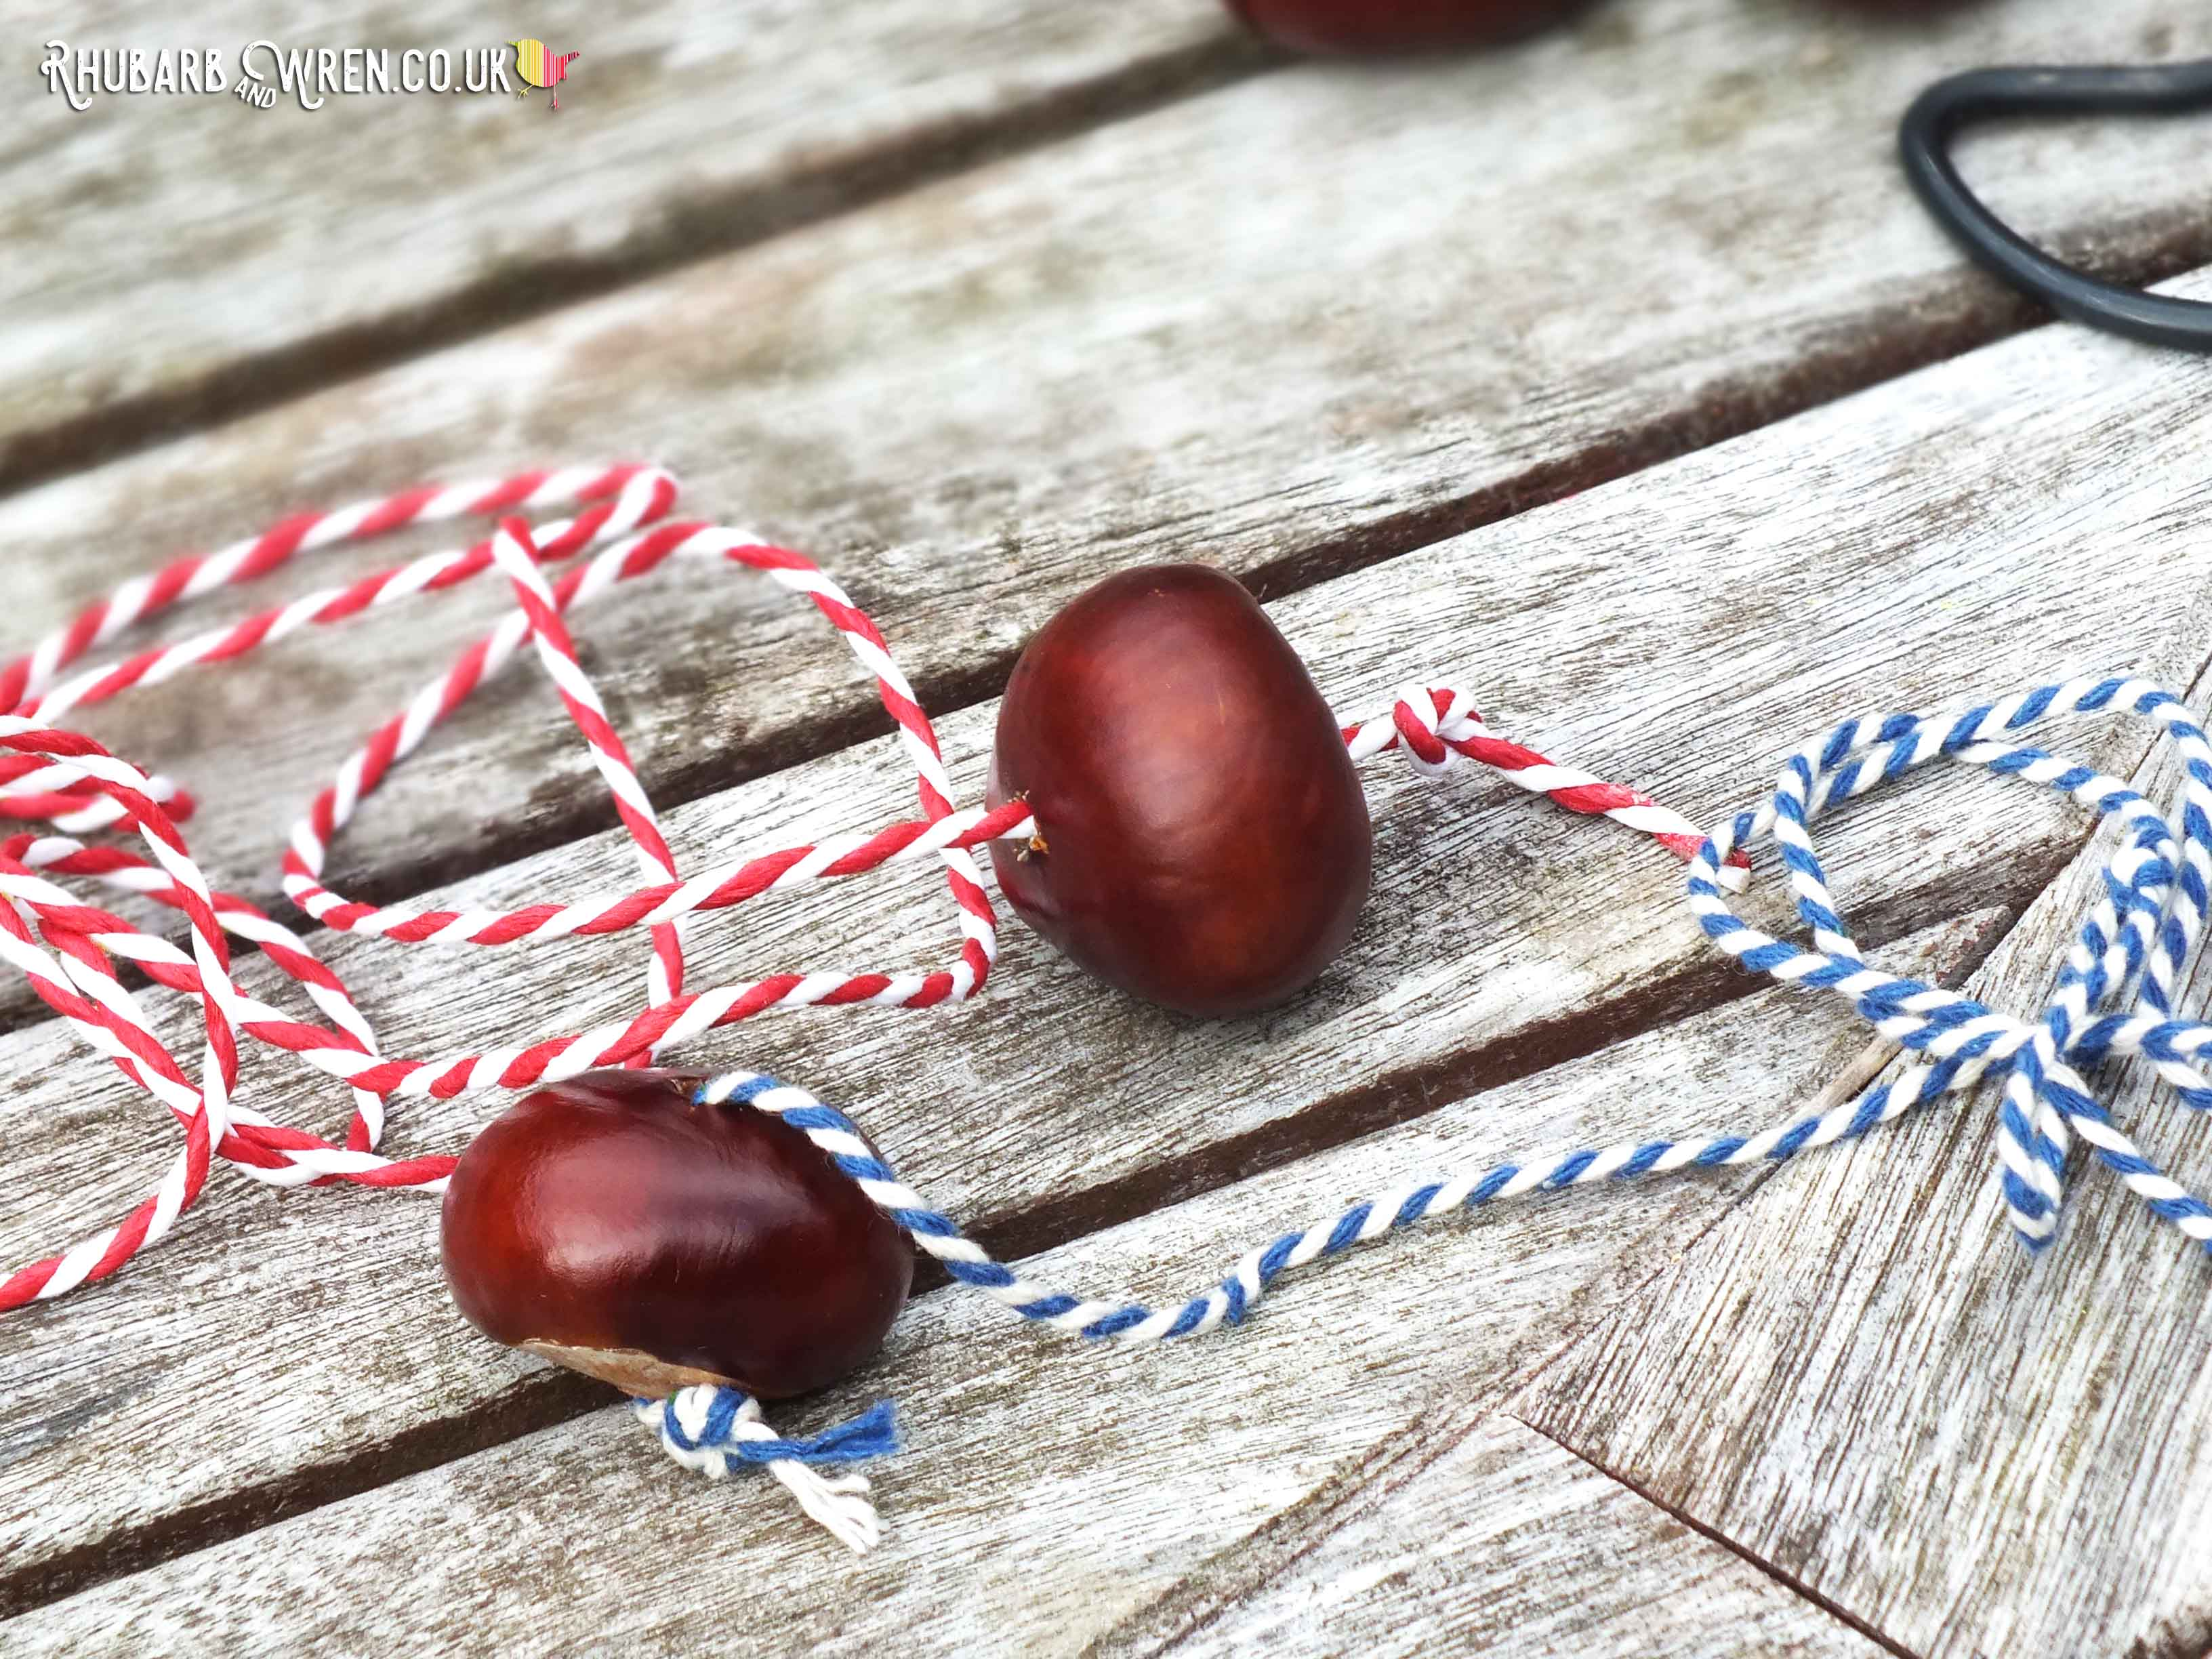 Conkers threaded onto striped bakers twine or butchers string